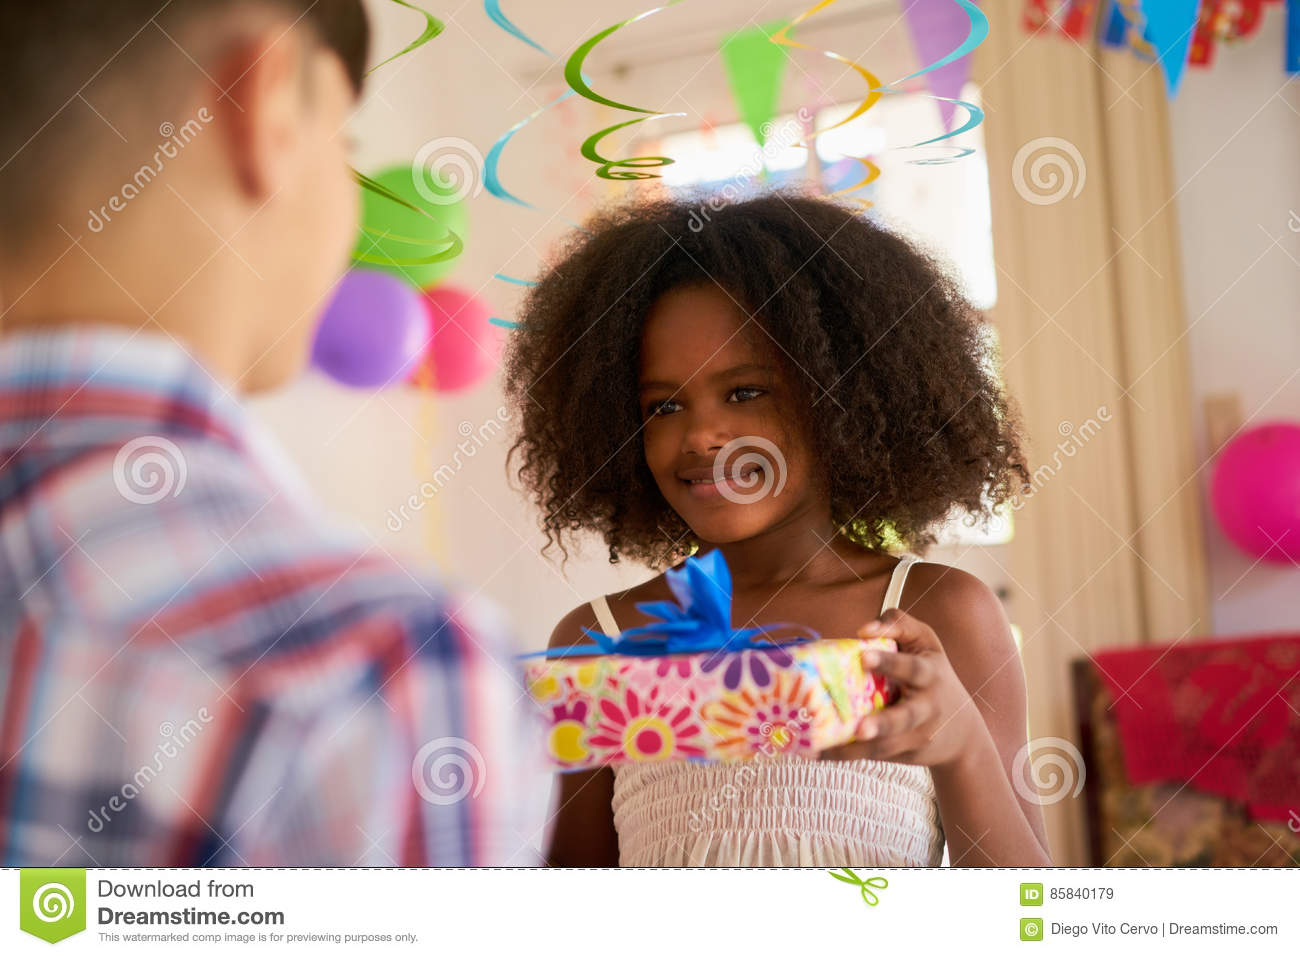 Group Of Happy Children Celebrating Birthday At Home Kids Having Fun Party Cute Black Girl Giving Gift Box To Friend